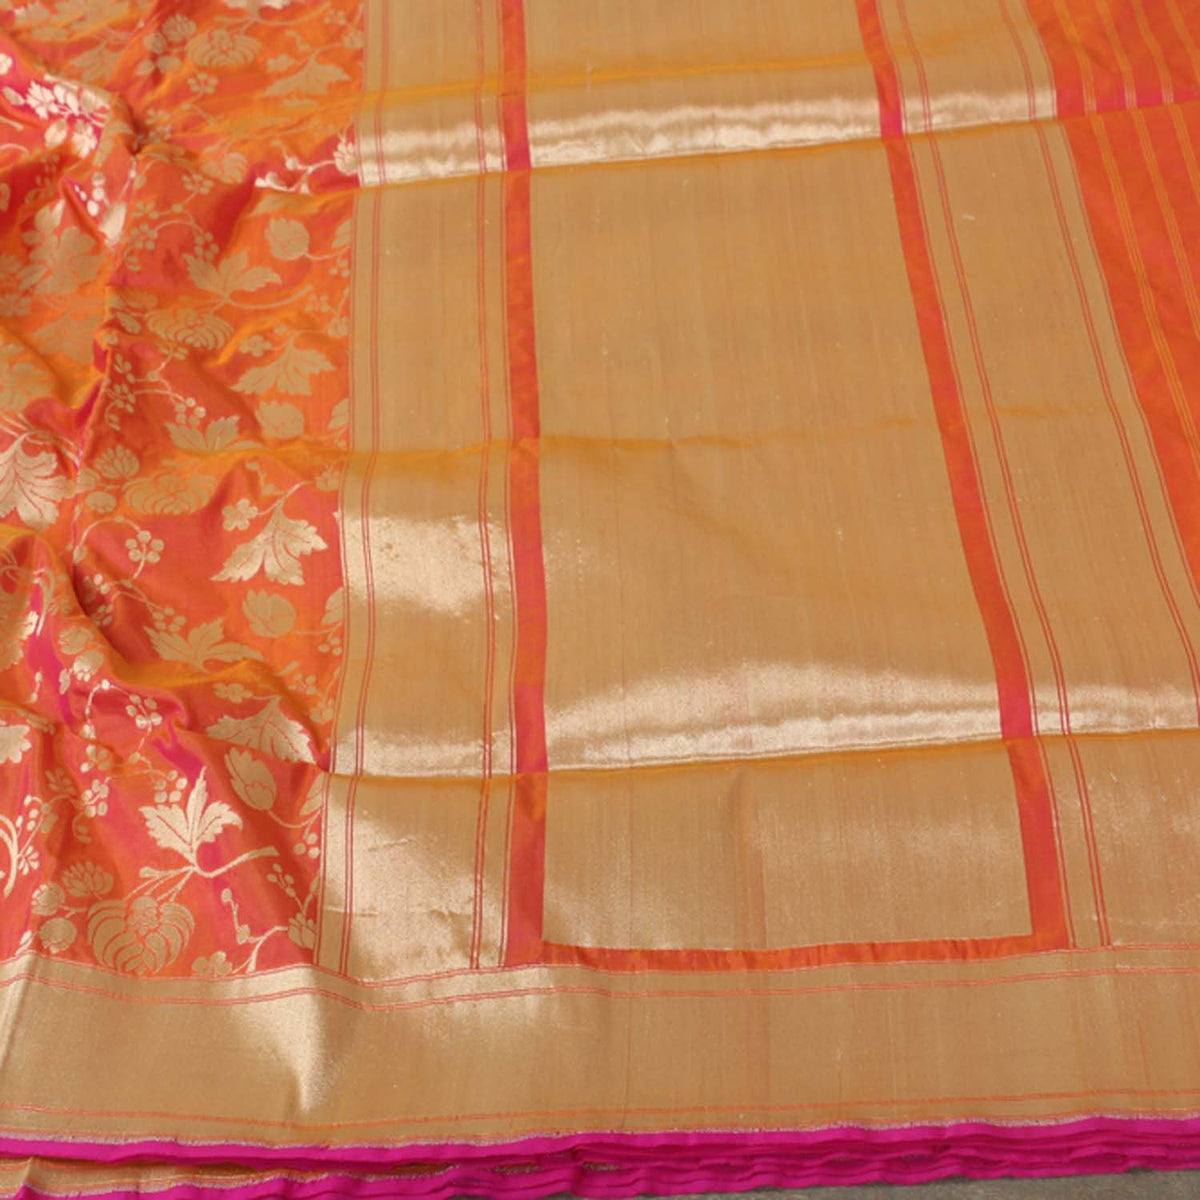 Gold-Indian Pink Pure Silk Georgette Banarasi Handloom Saree - Tilfi - 3